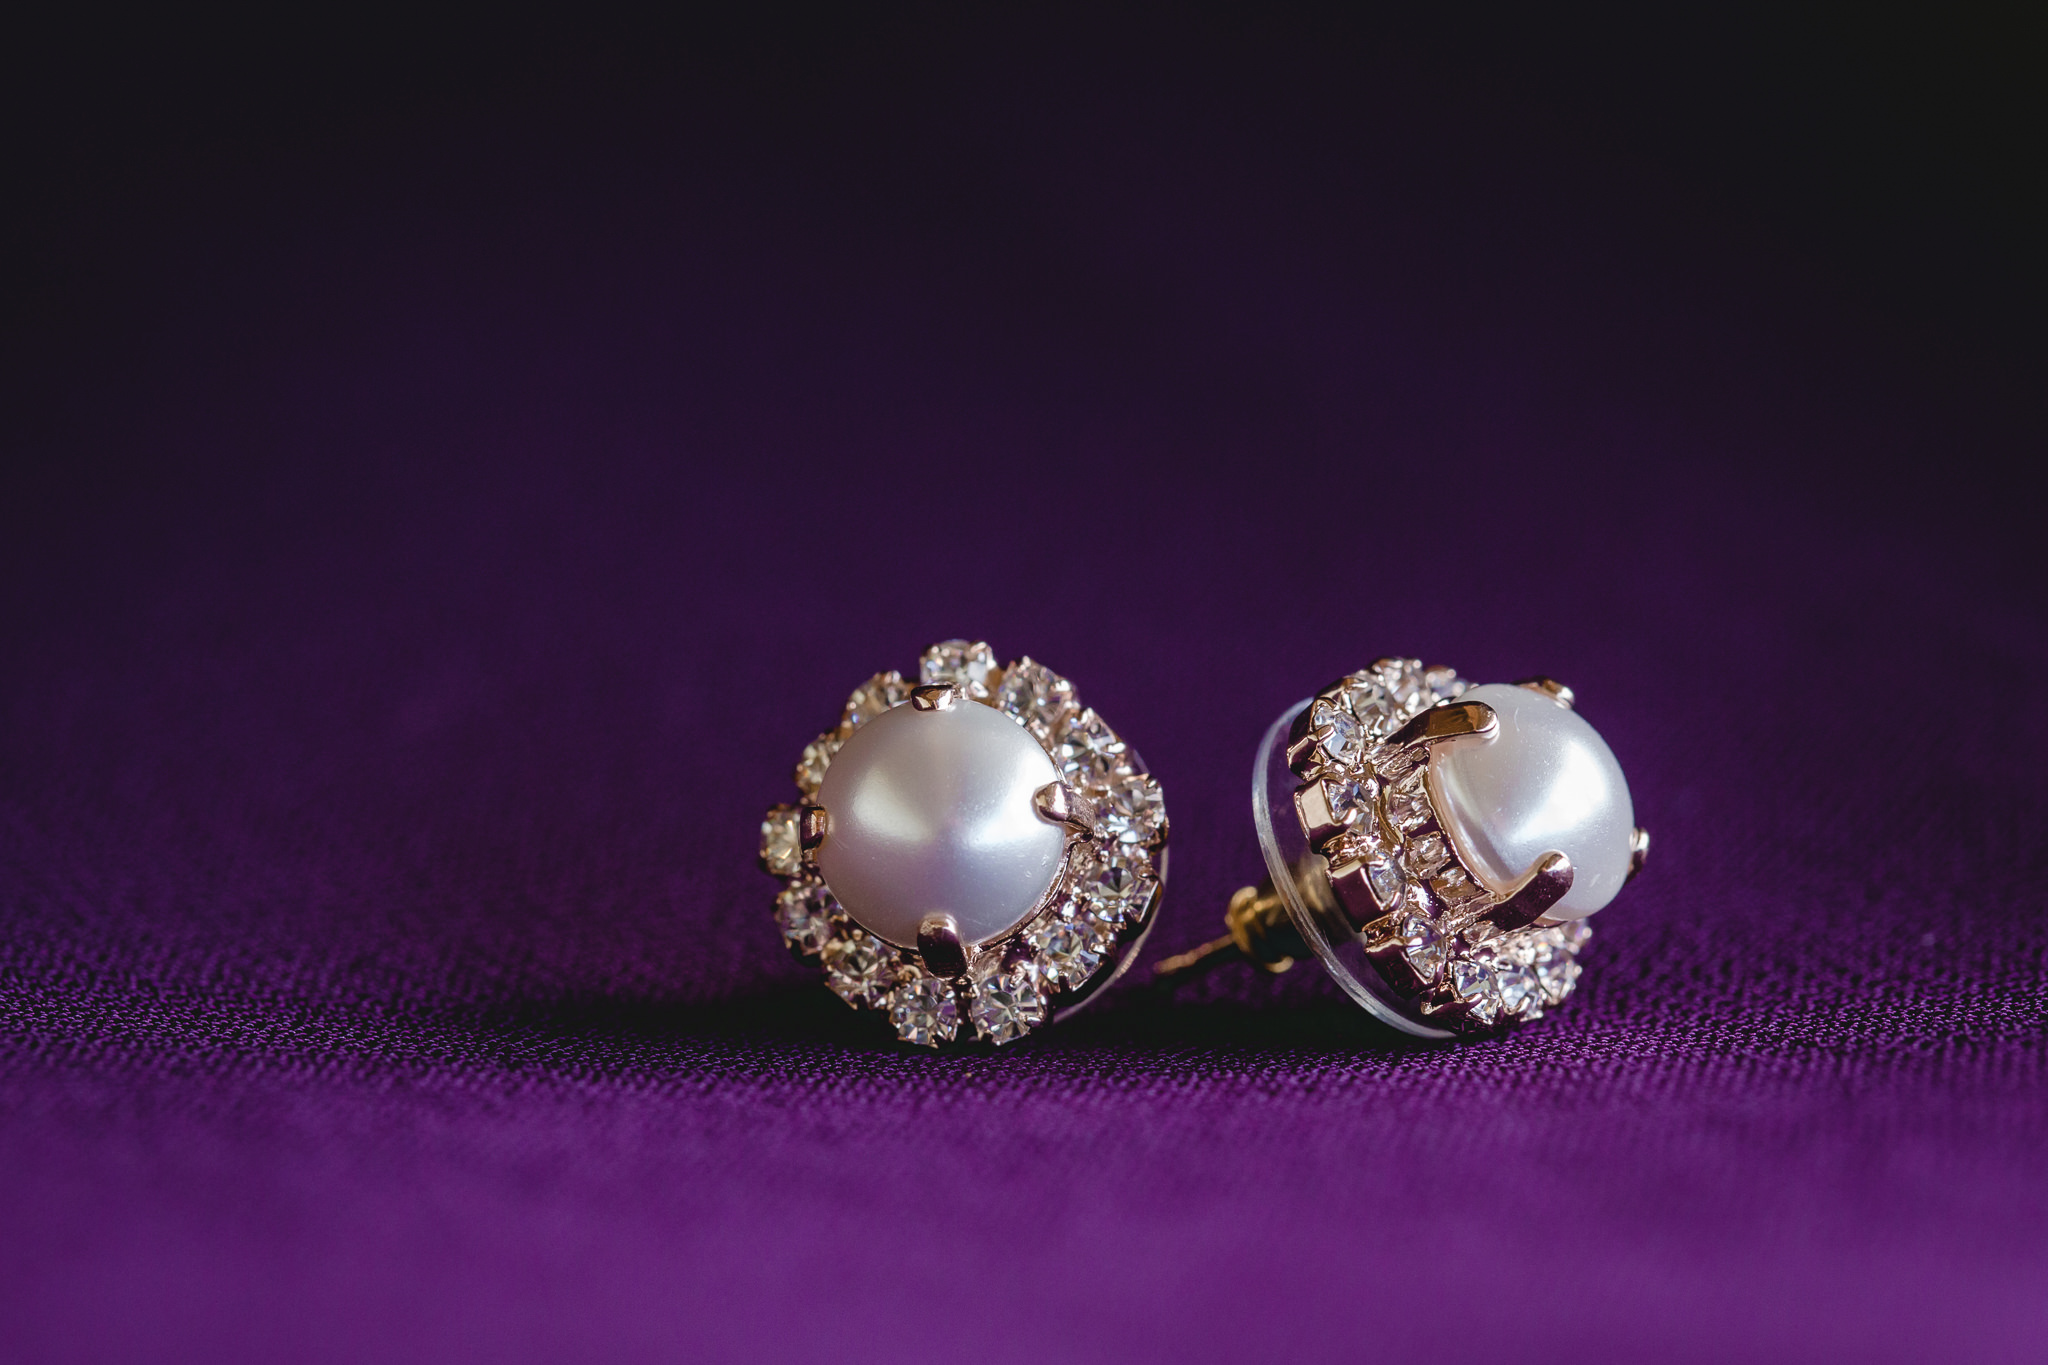 Rose gold and pearl earrings on a purple bridesmaids dress